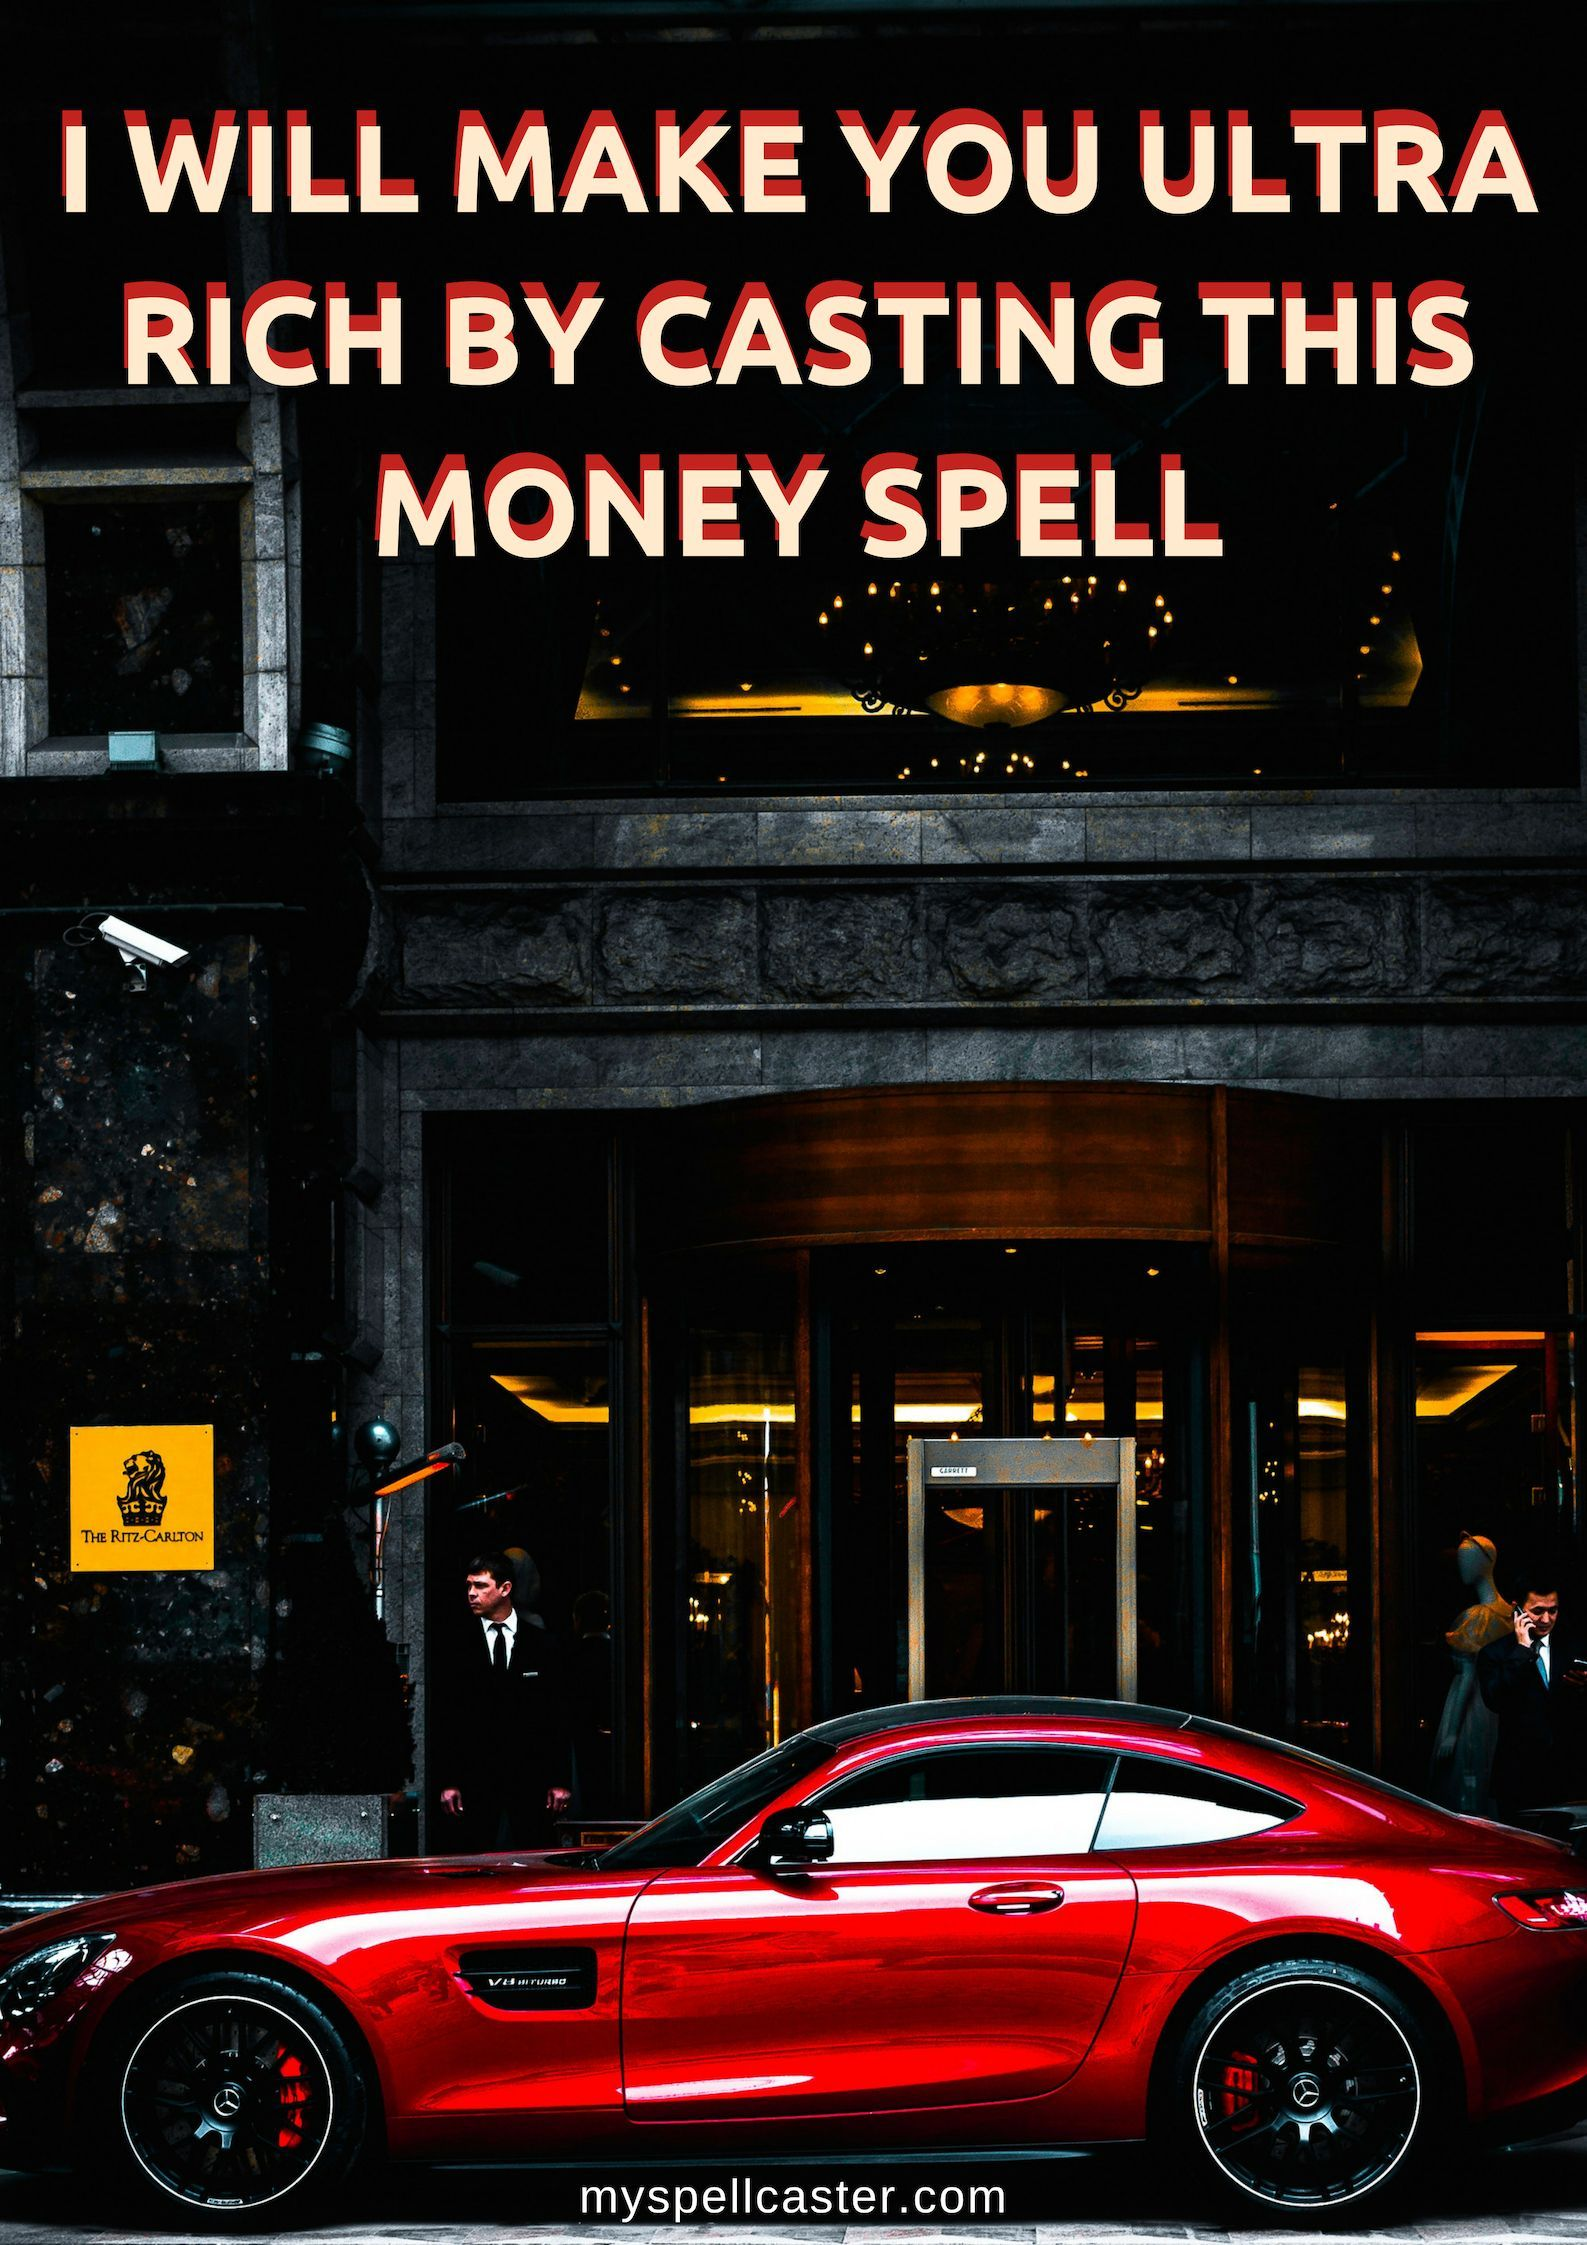 I Will Make You Rich Using This Money Spell Luxury Car Rental Car Wallpapers Sports Cars Luxury